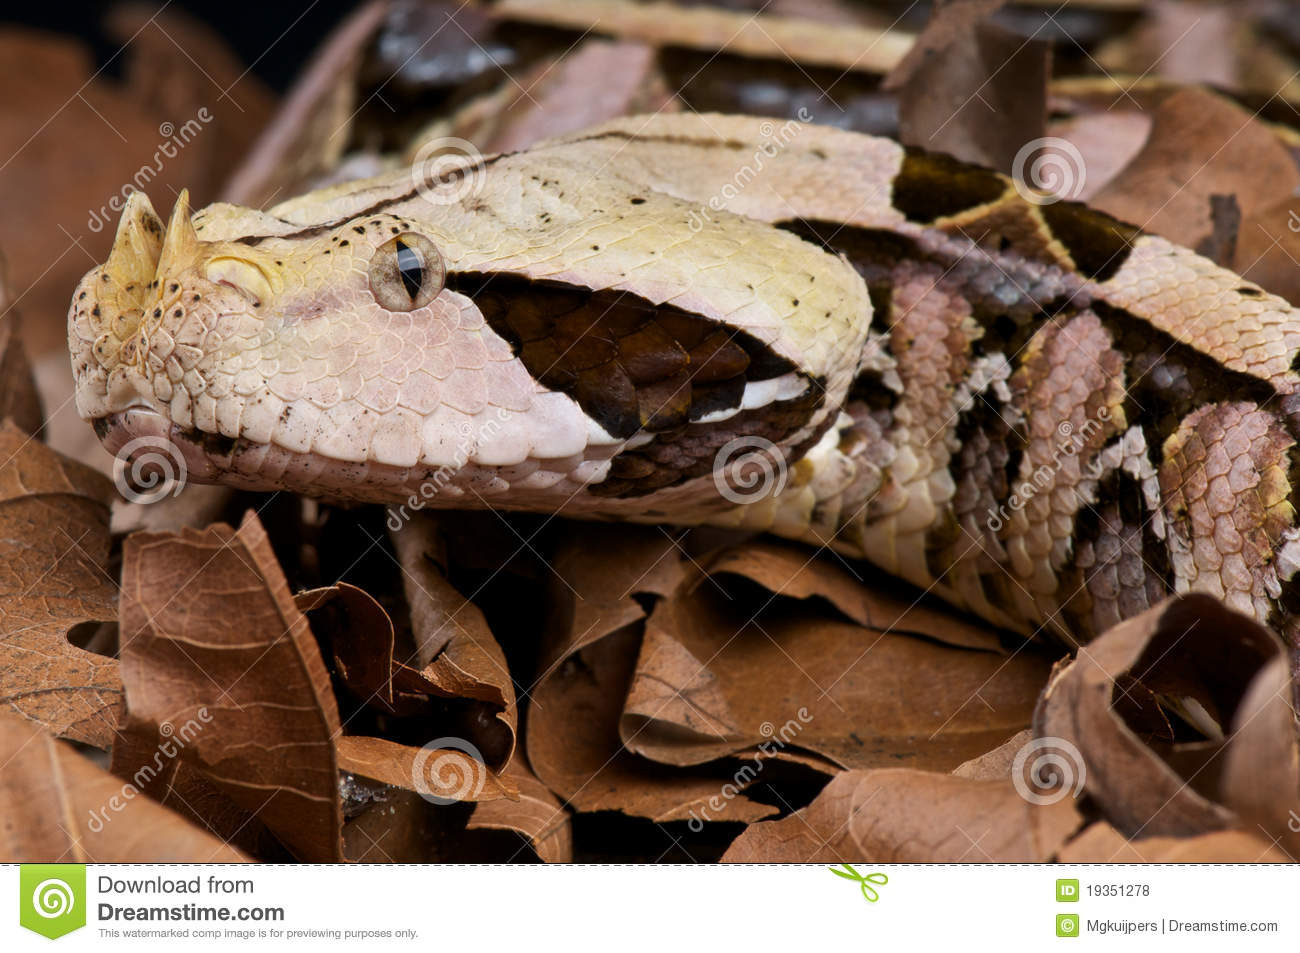 Gaboon Viper clipart #1, Download drawings